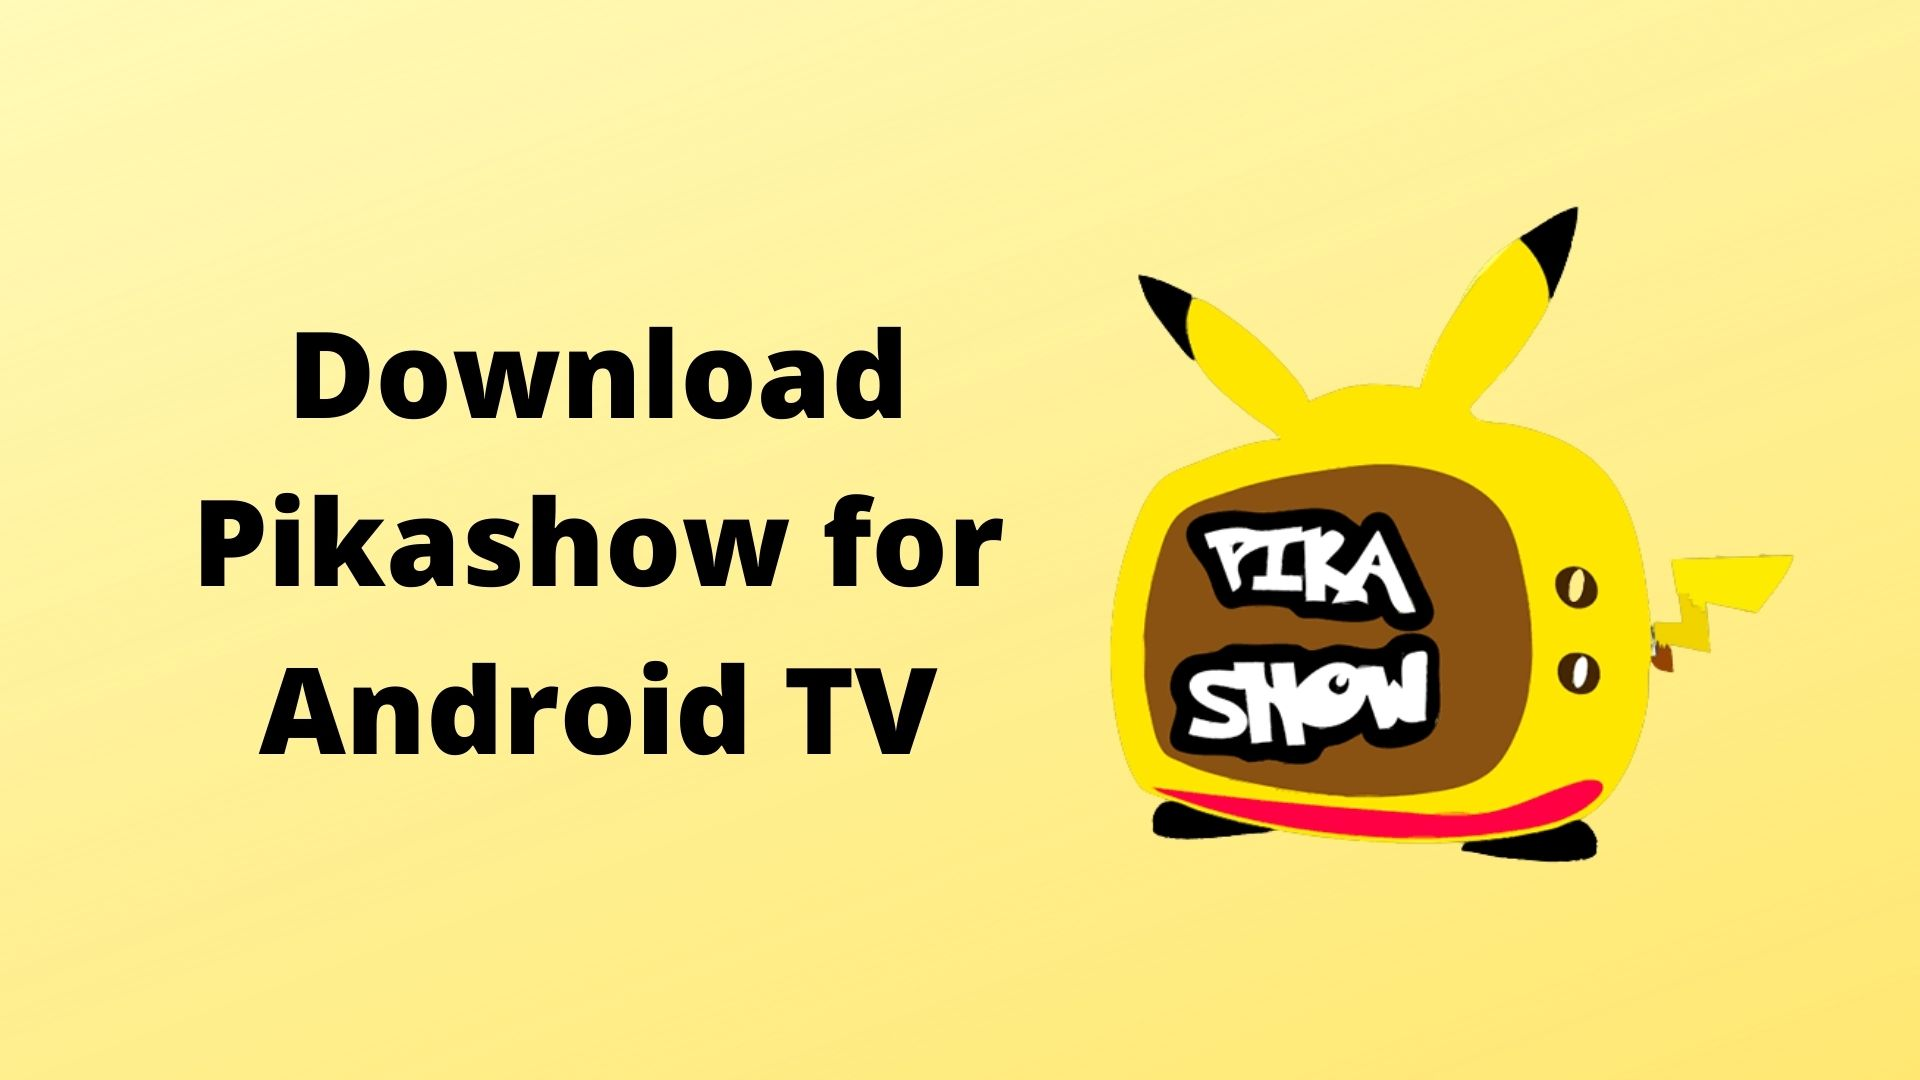 Download Pikashow for Android TV